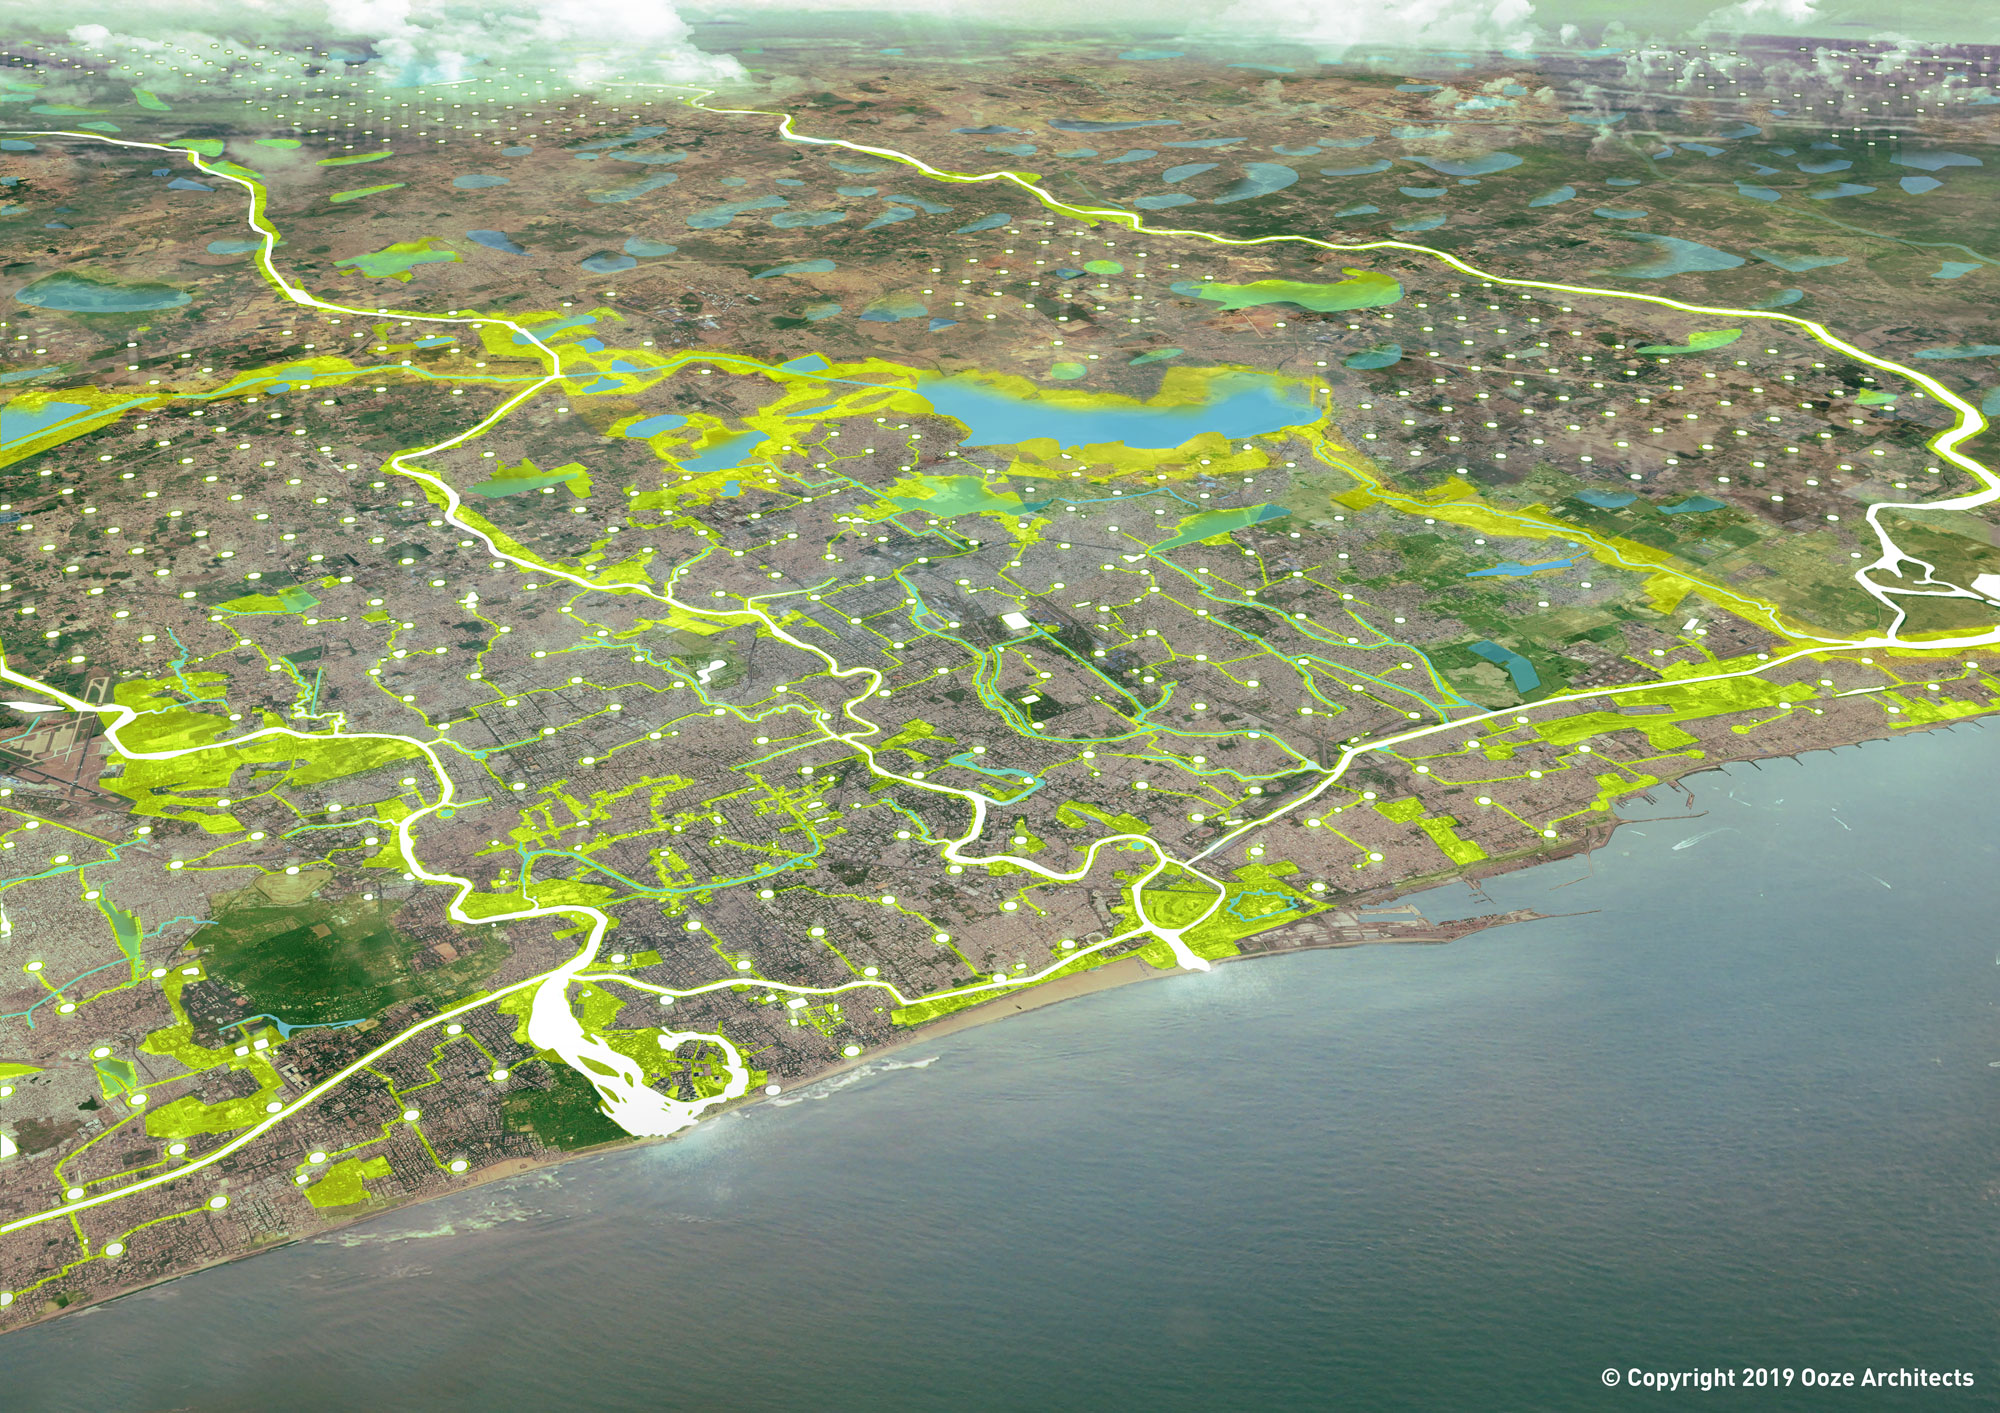 City of 1000 Tanks Vision for Chennai ©2019 Ooze Architects